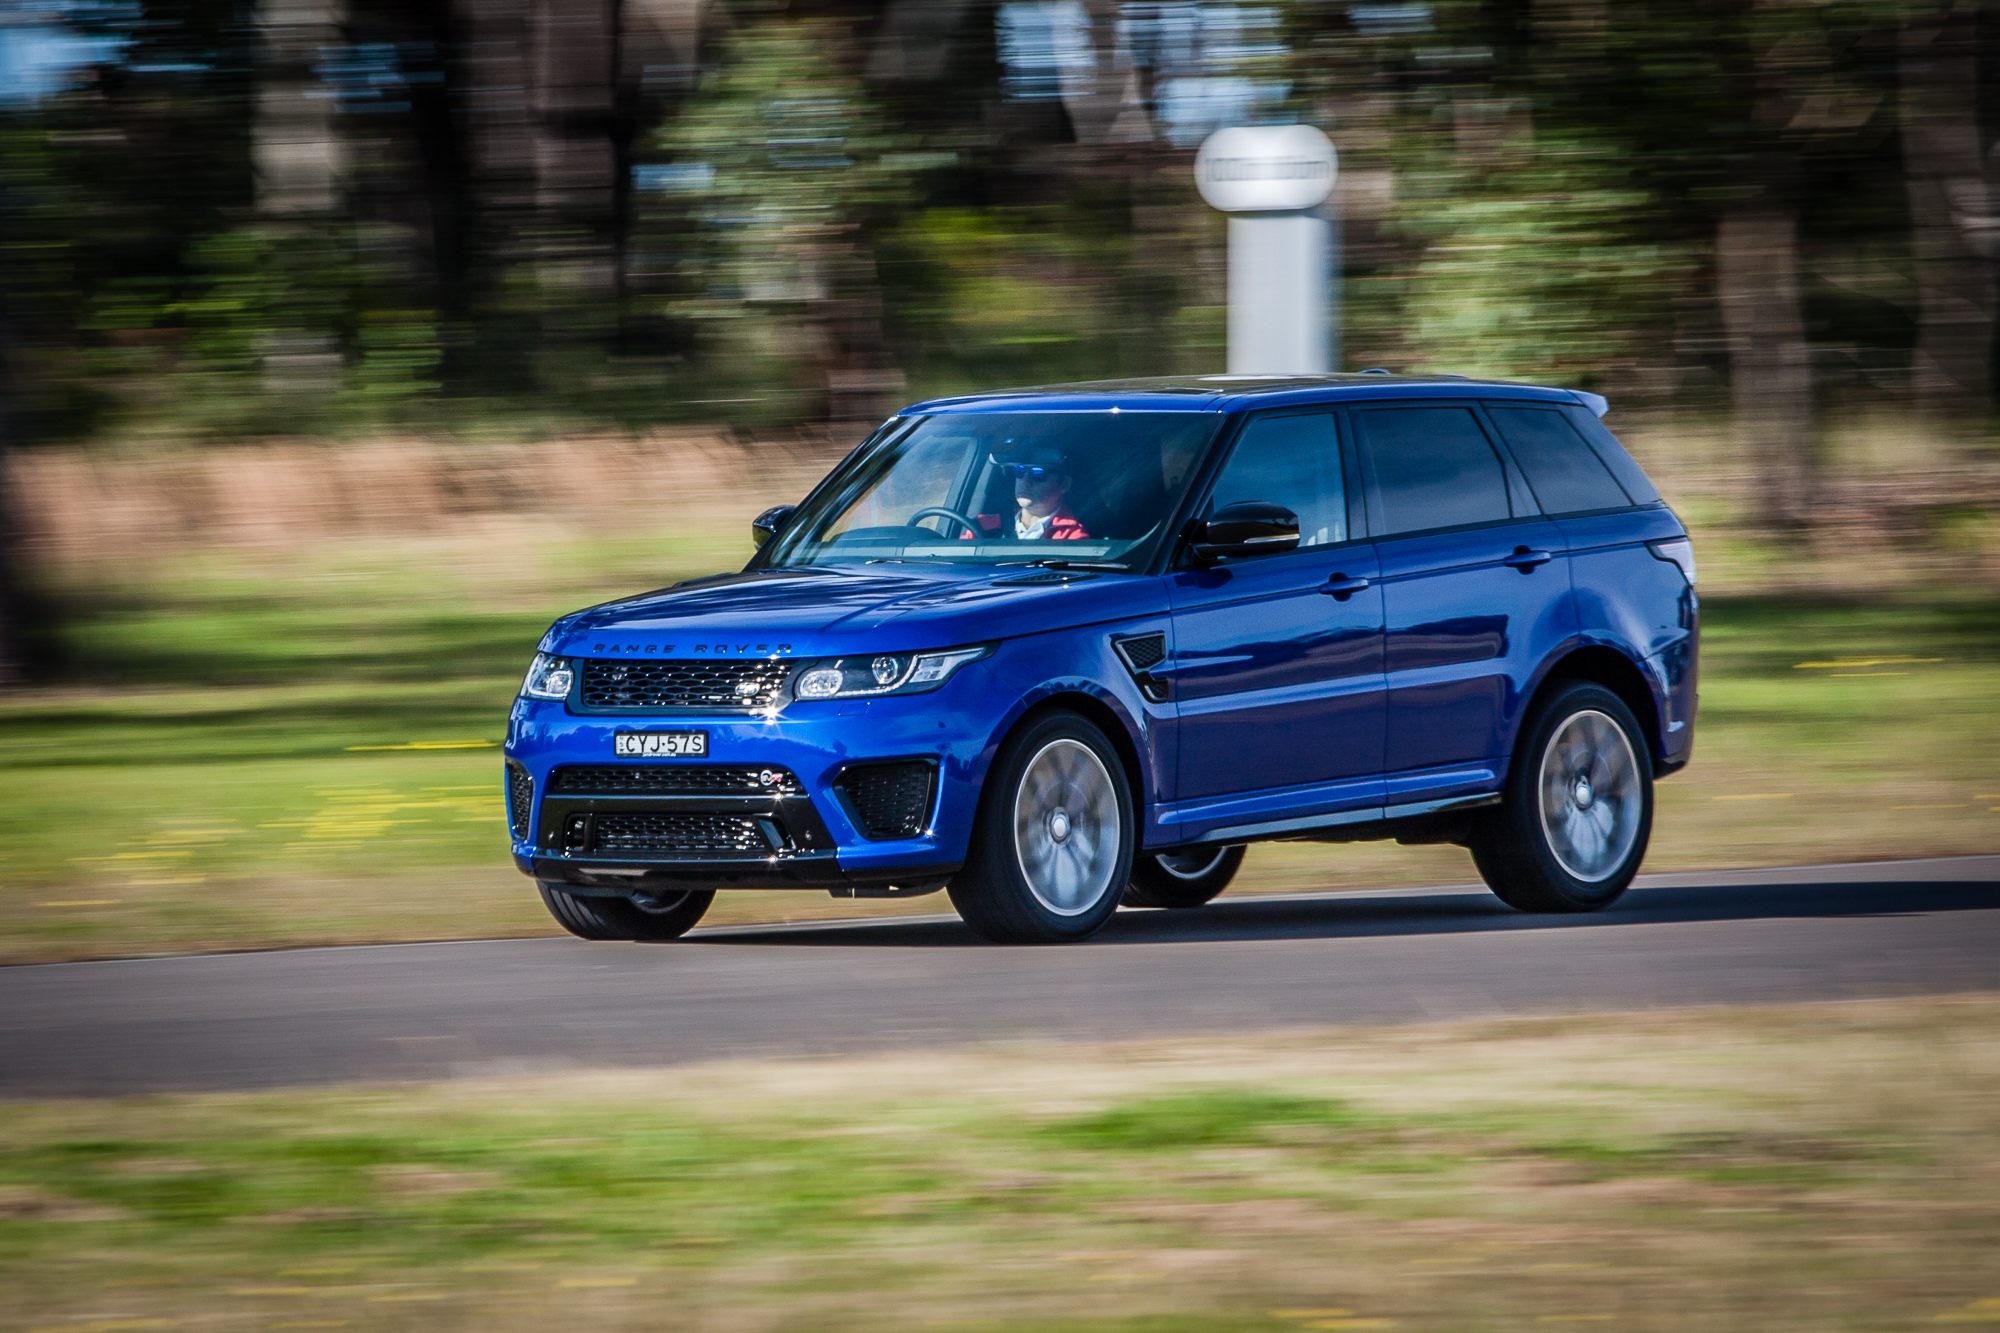 Luxury 2015 Range Rover Sport SVR Review  CarAdvice